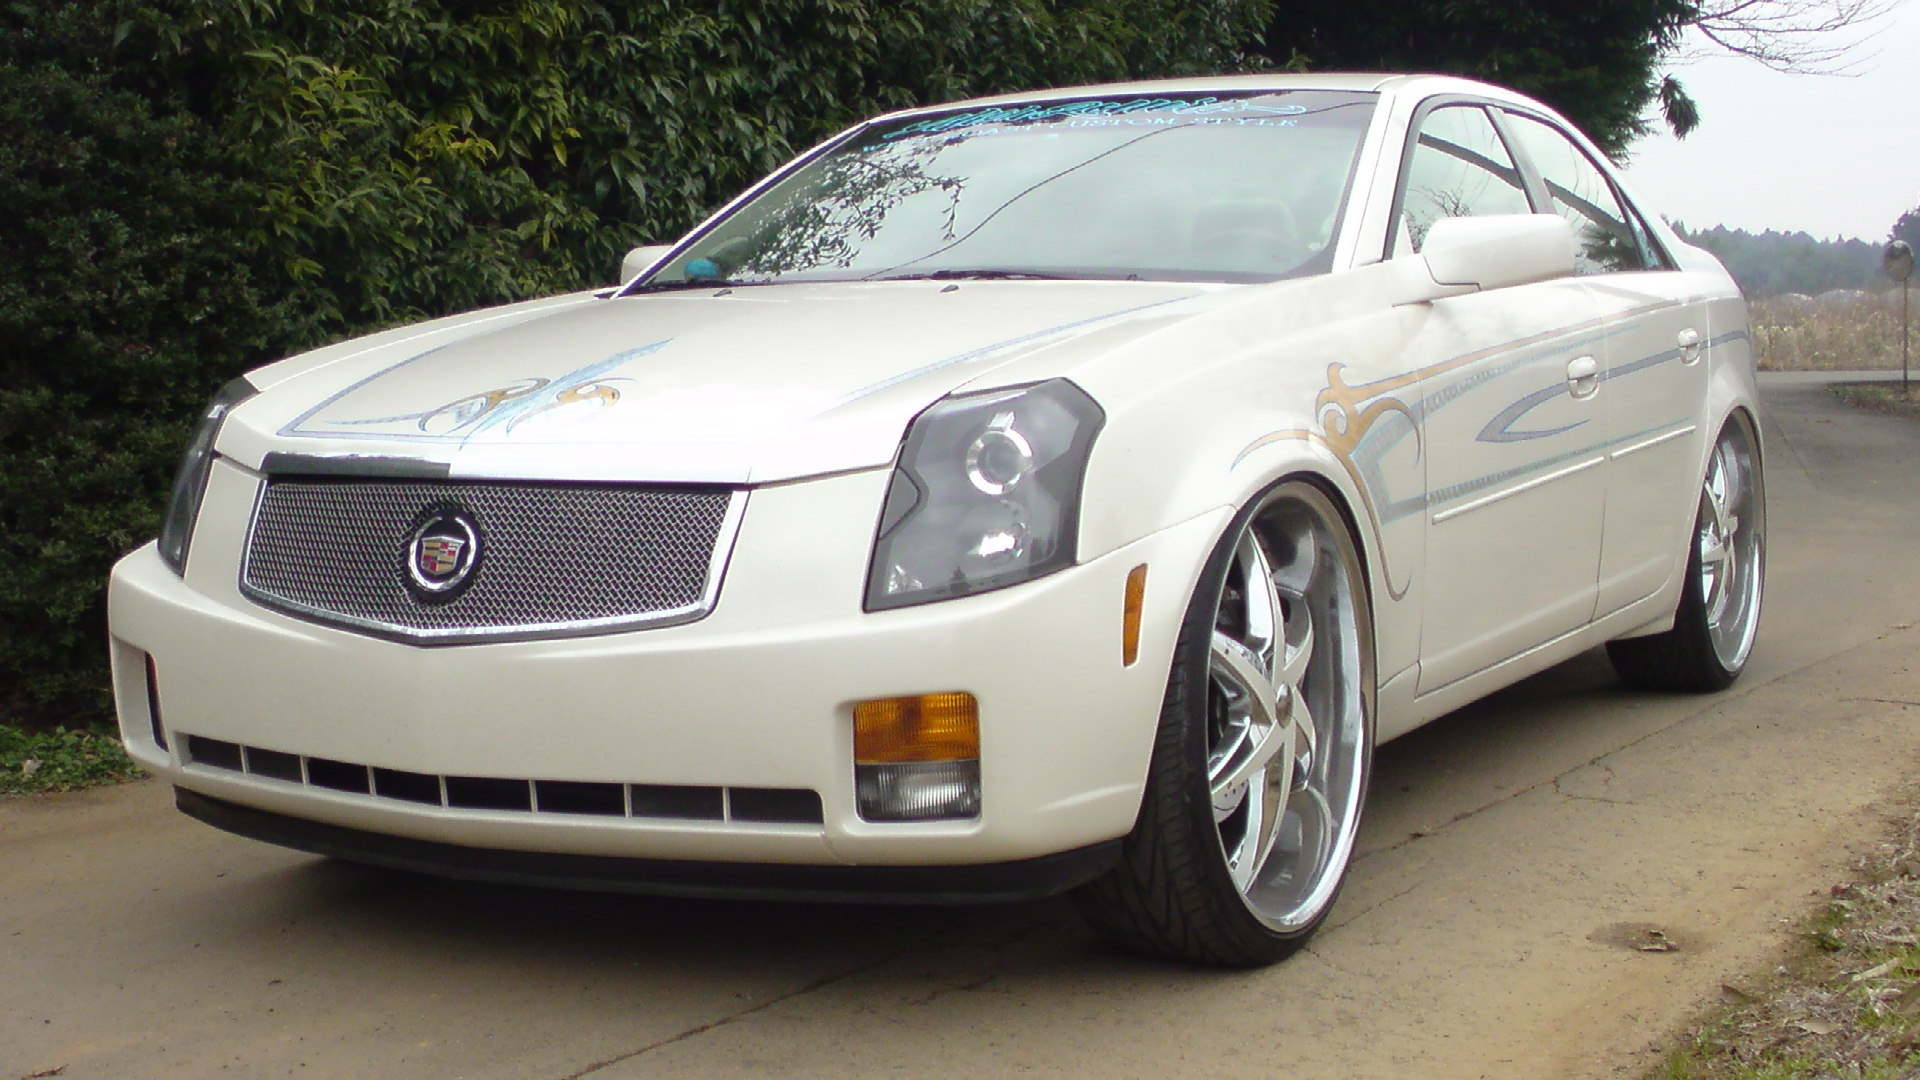 2003 Cadillac P0420 - Year of Clean Water